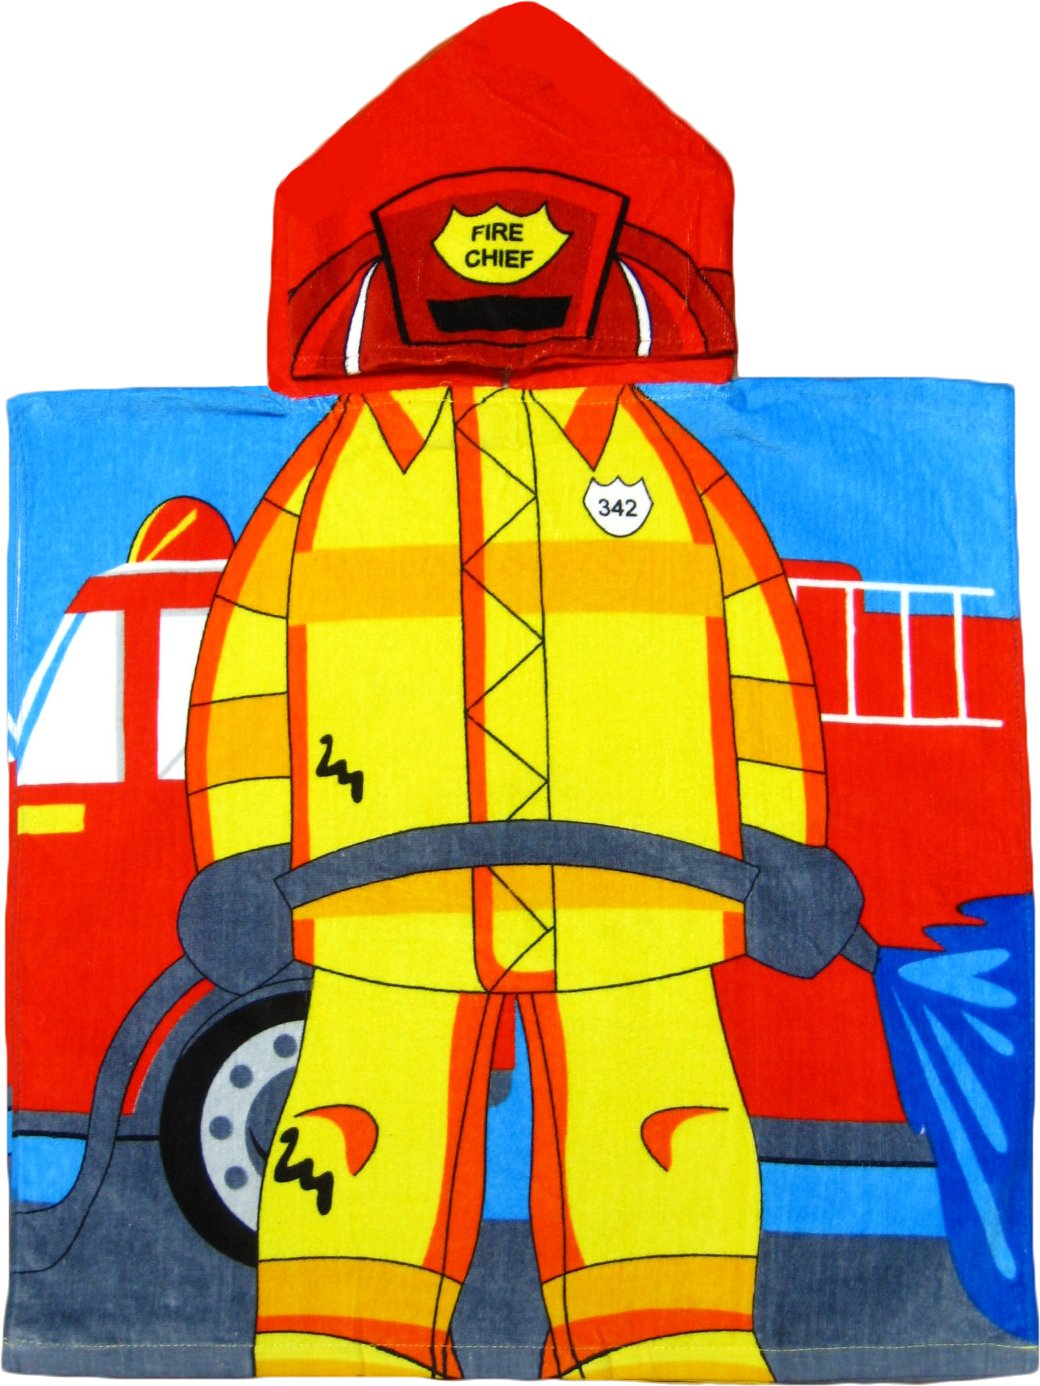 Fireman 100% Cotton Poncho Style Hooded Bath & Beach Towel with Colorful Double Sized Design by Kreative Kids